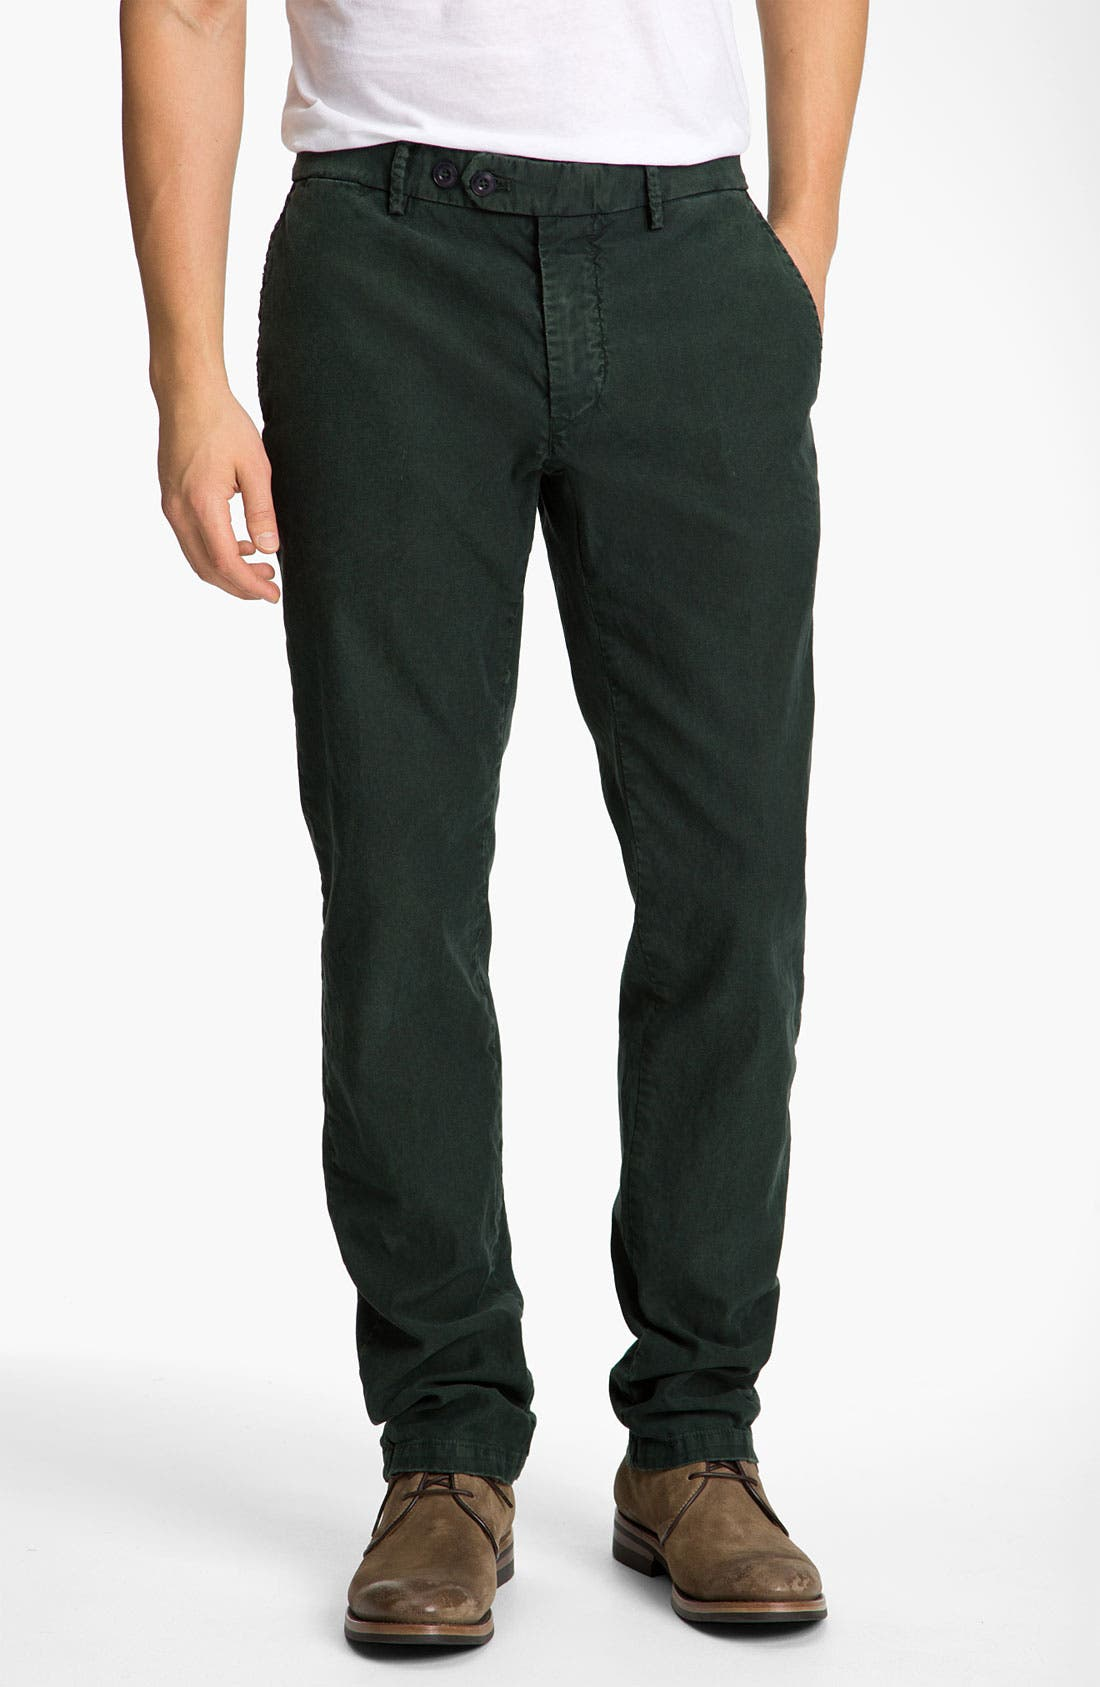 Main Image - Mason's Washed Cotton Corduroy Pants